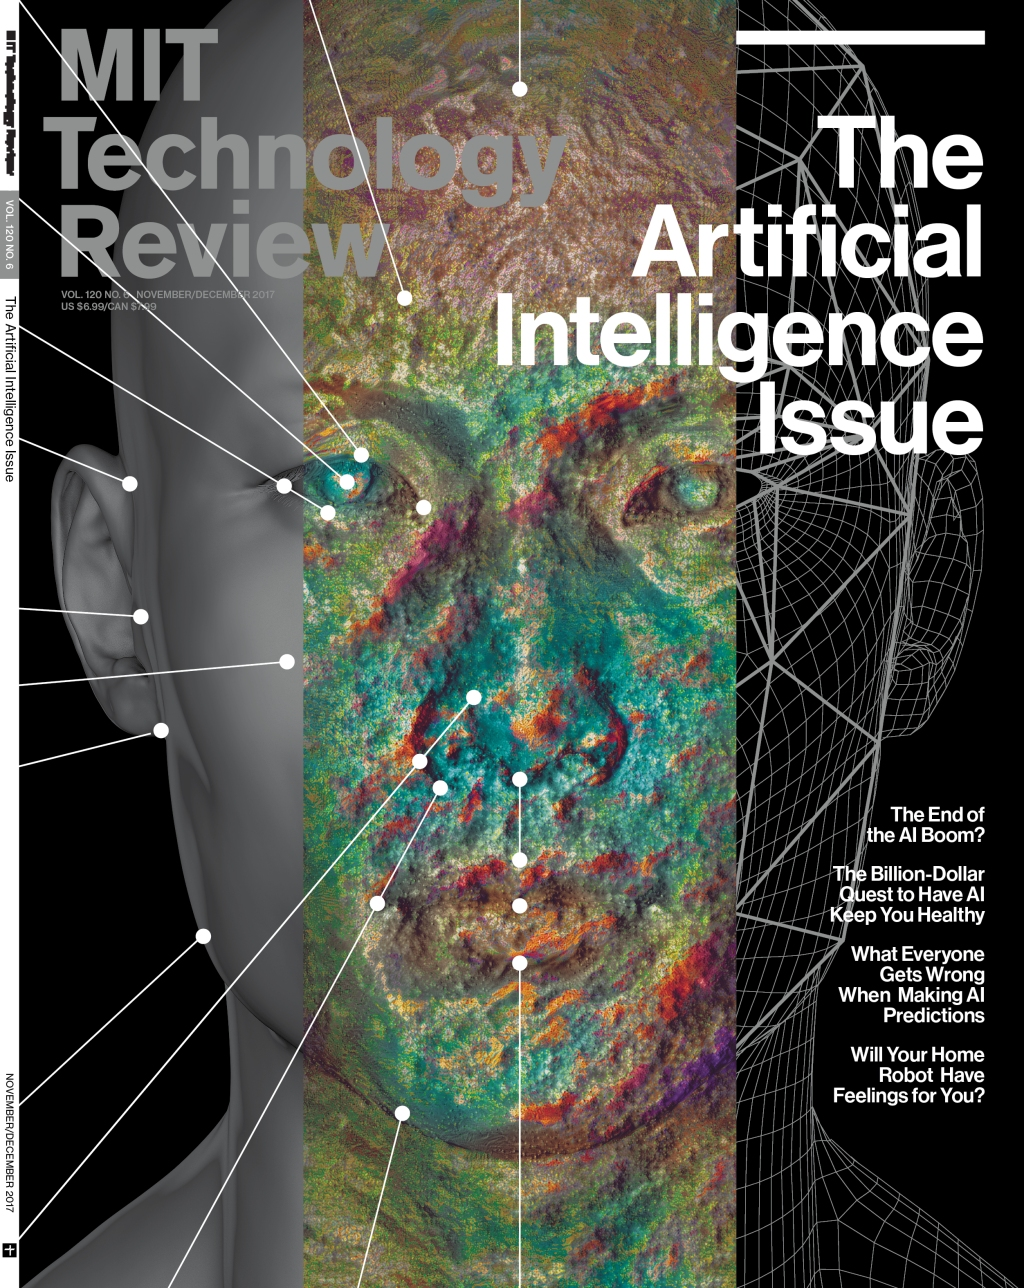 The Artificial Intelligence Issue